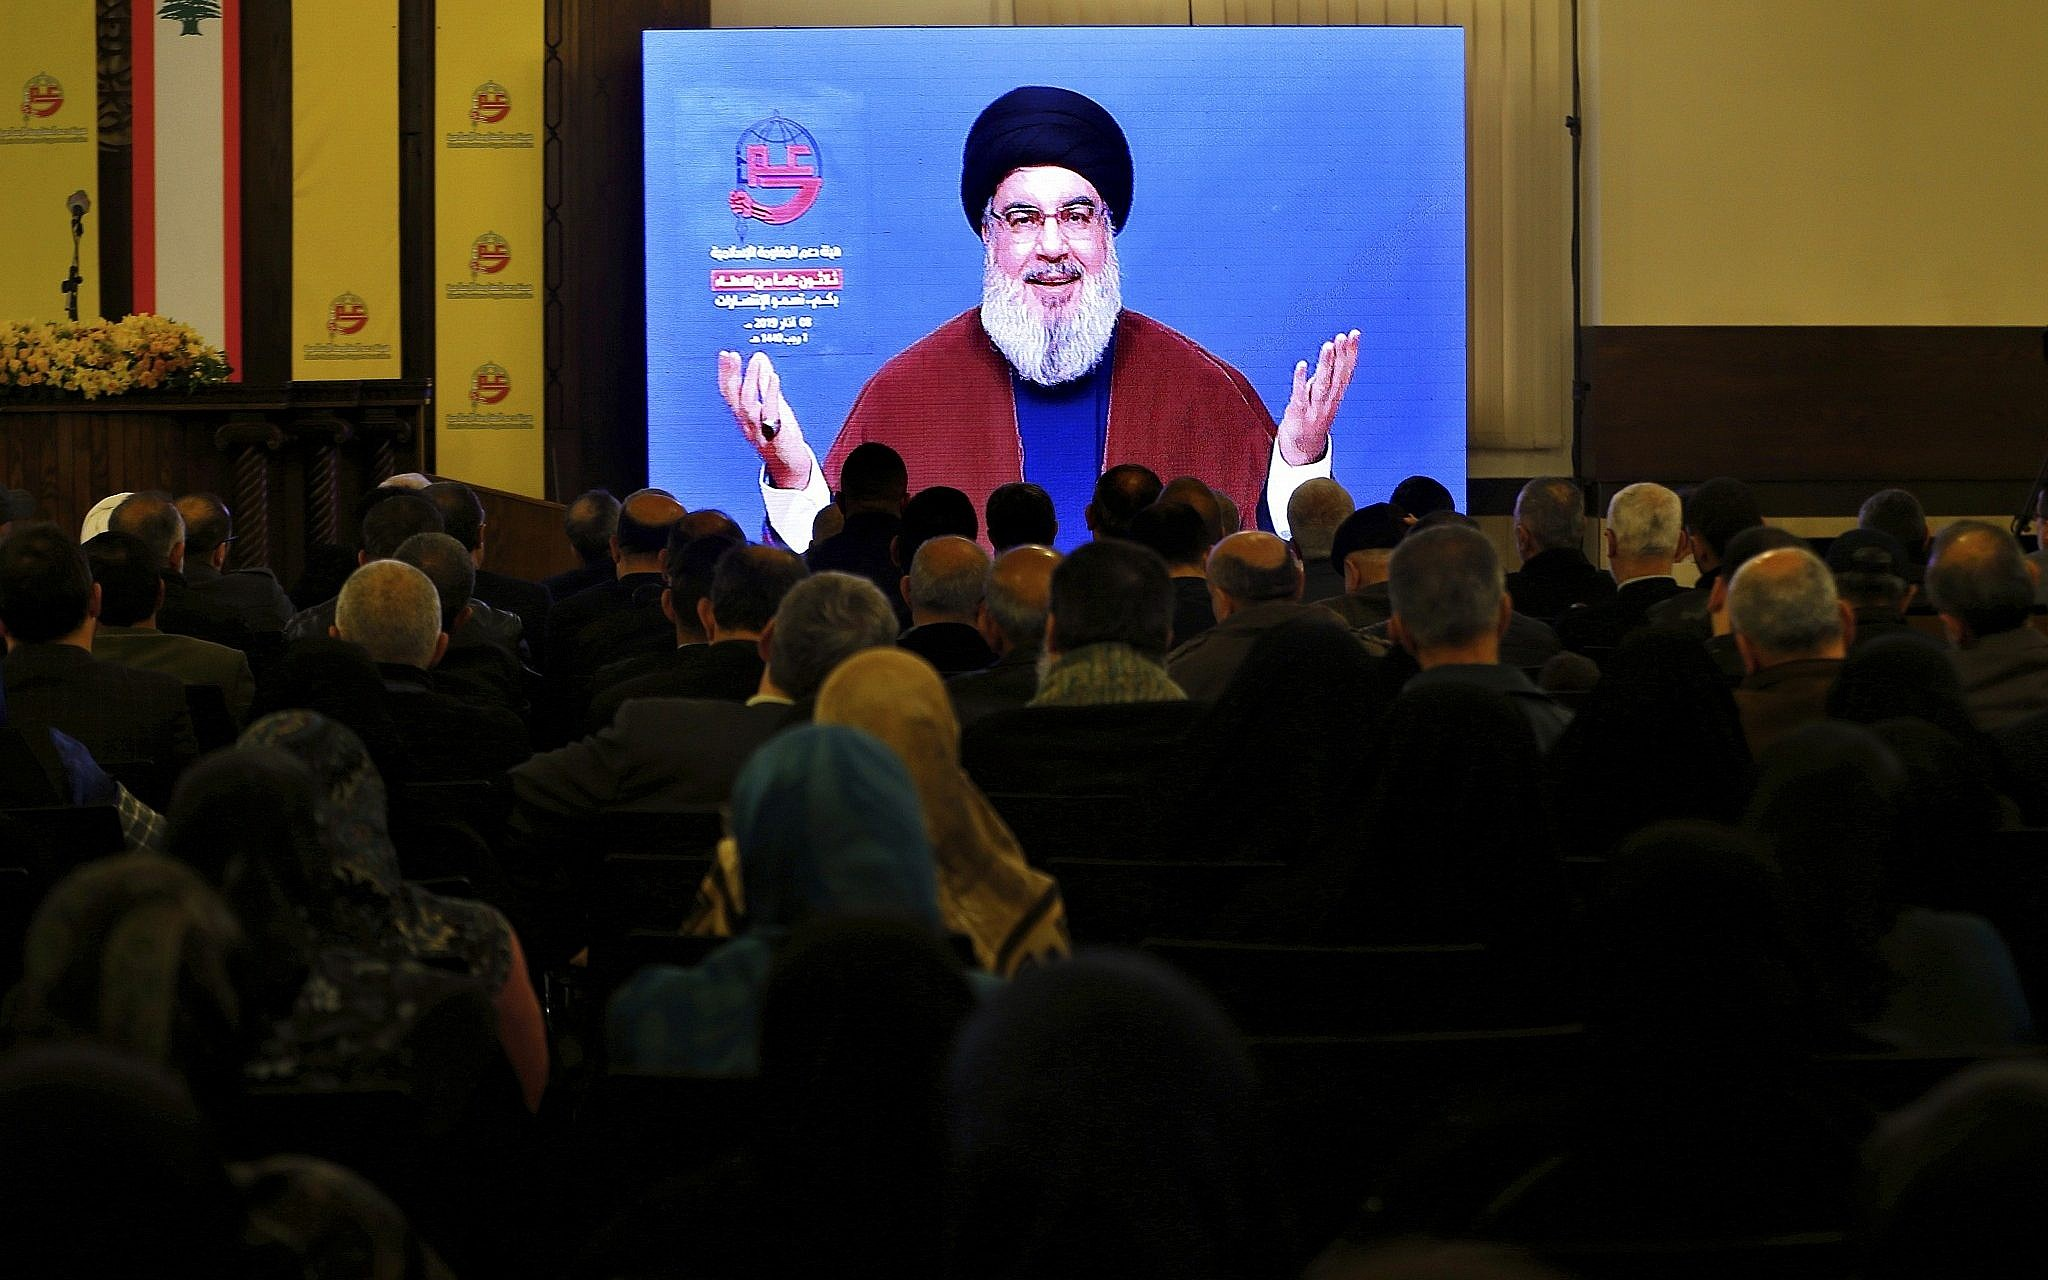 Hezbollah leader calls on supporters to donate to the group